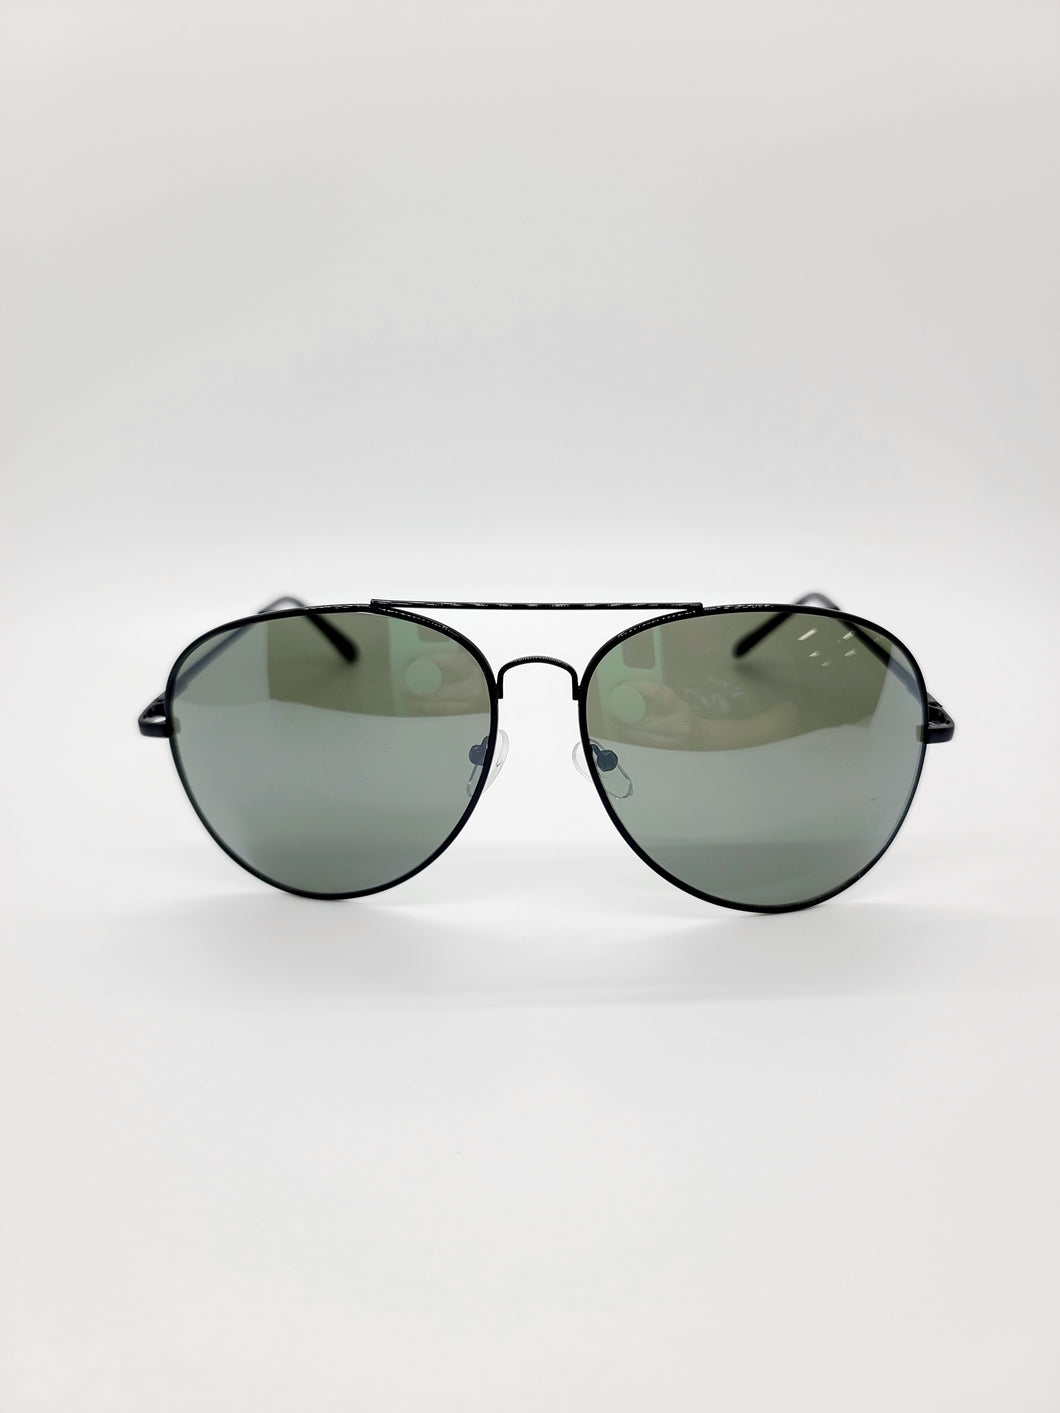 black lens wire frame large aviator style sunglasses